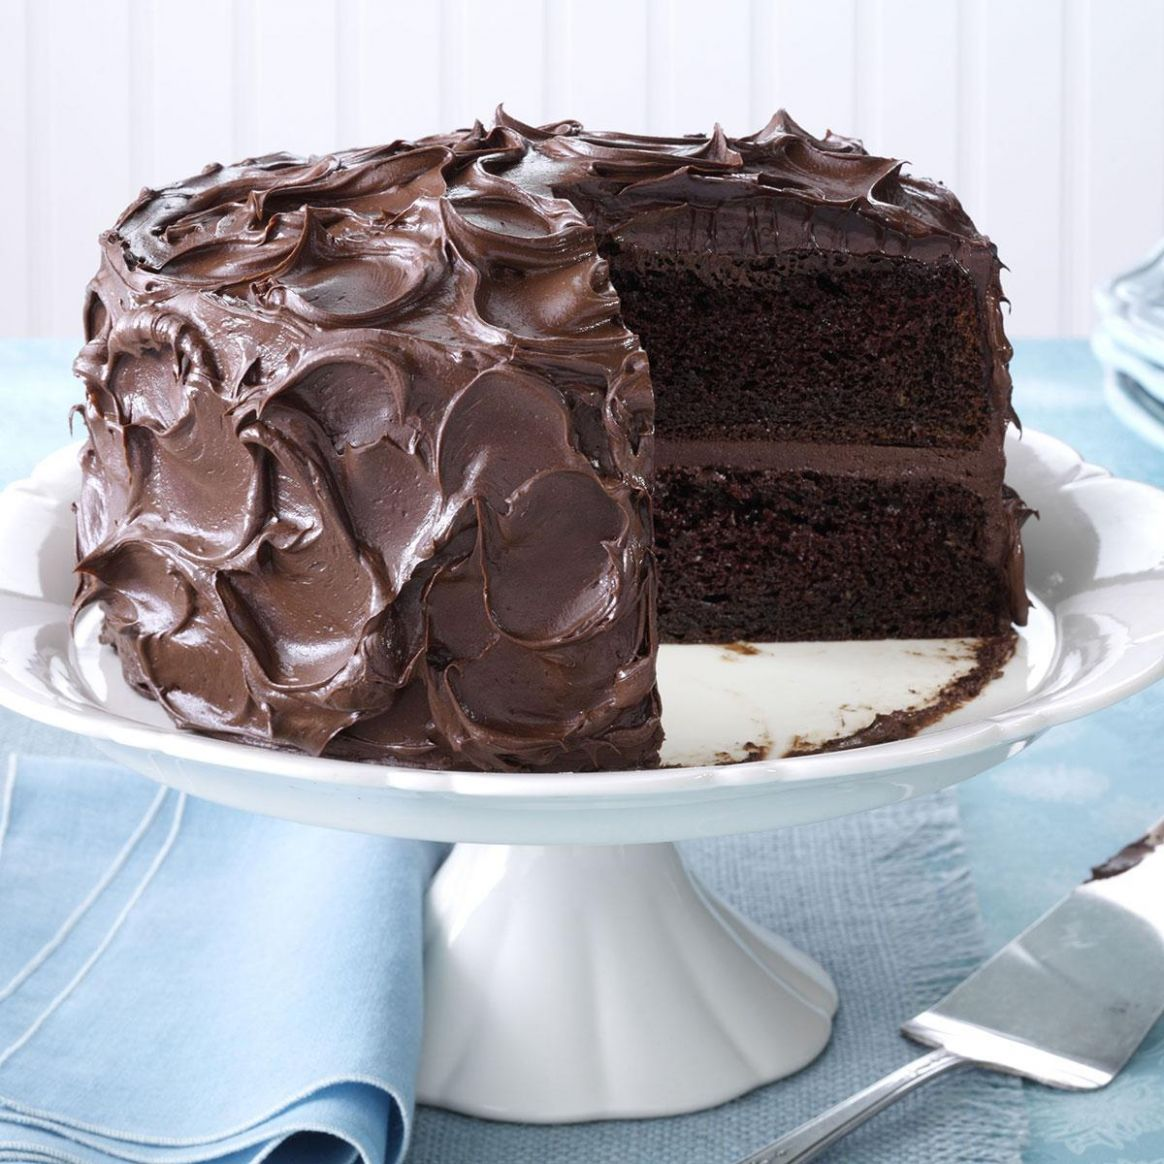 Come-Home-to-Mama Chocolate Cake - Recipes Chocolate Cake Mix